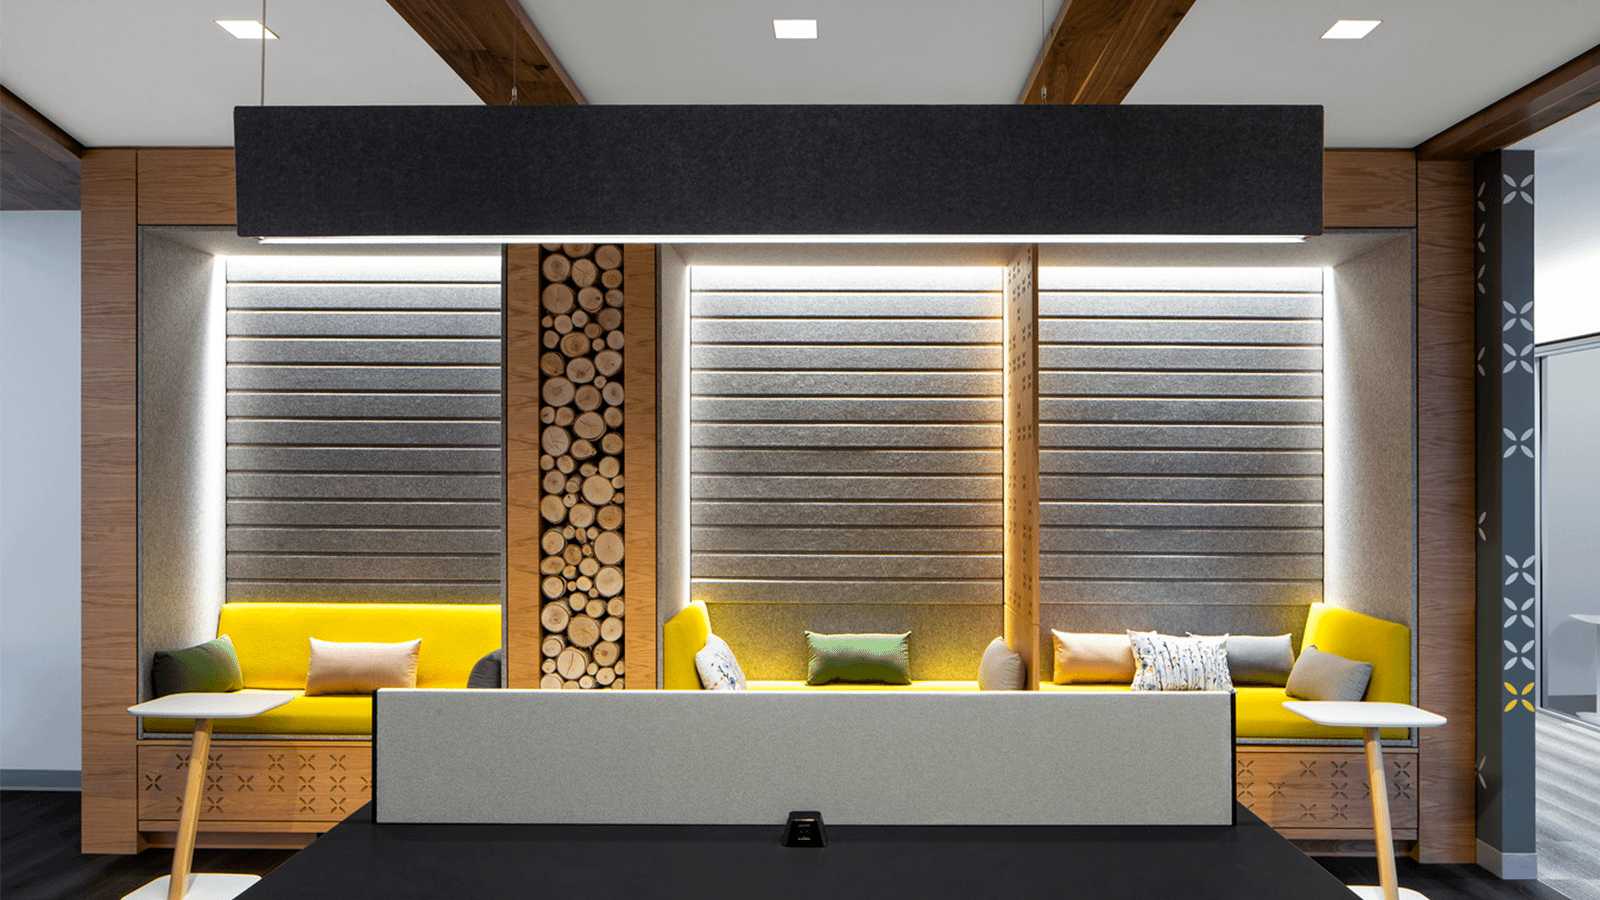 Acoustic partitions provide sound absorption in McLean, Virginia